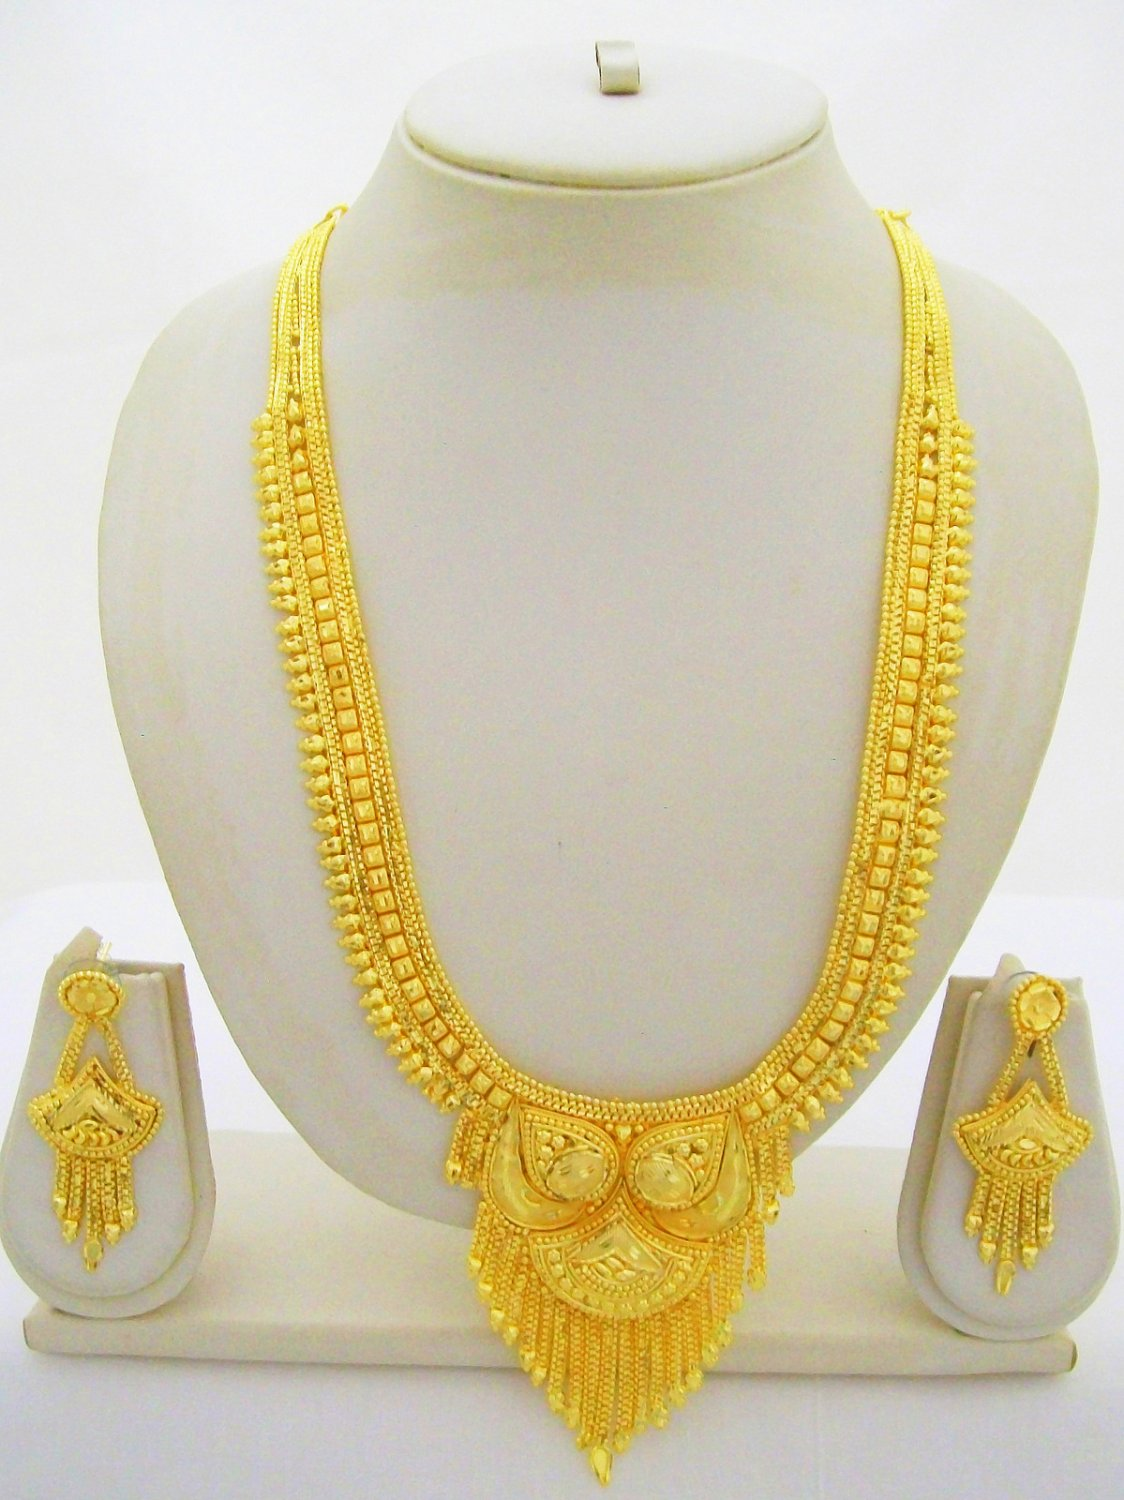 Rani Haar Gold Plated Necklace Antique Indian Filigree Long Jewelry Set